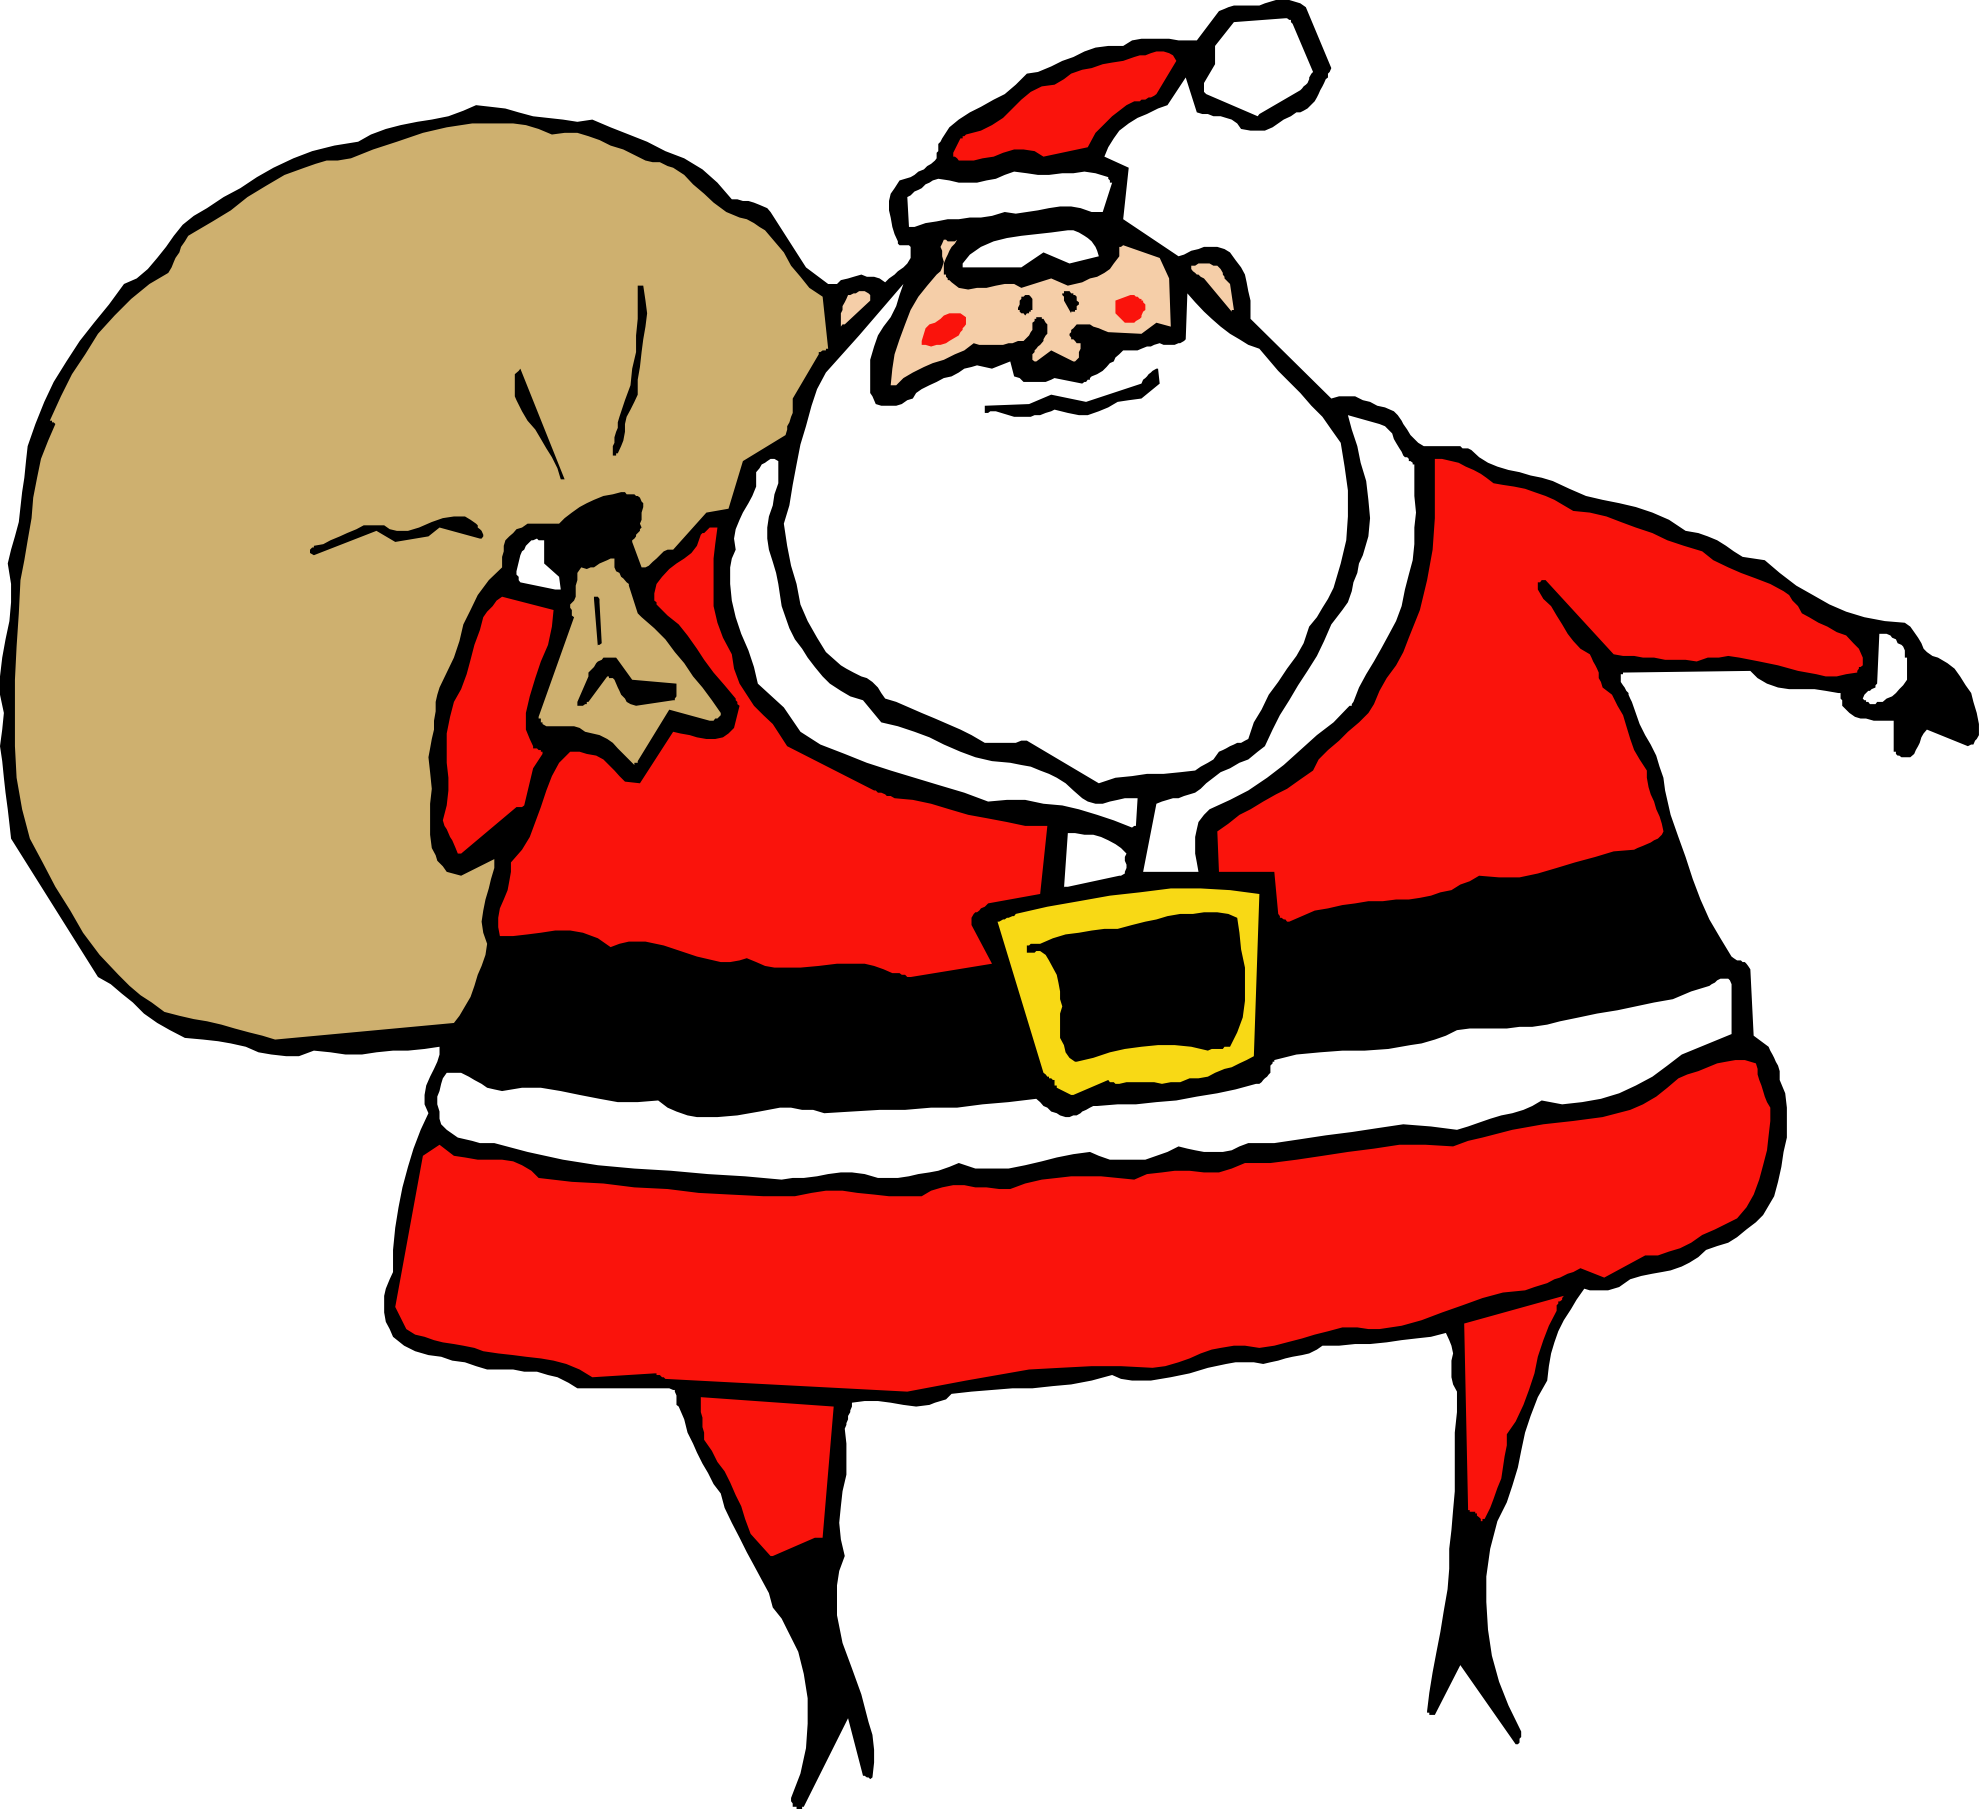 Sleigh clipart santa s. Cute claus at getdrawings